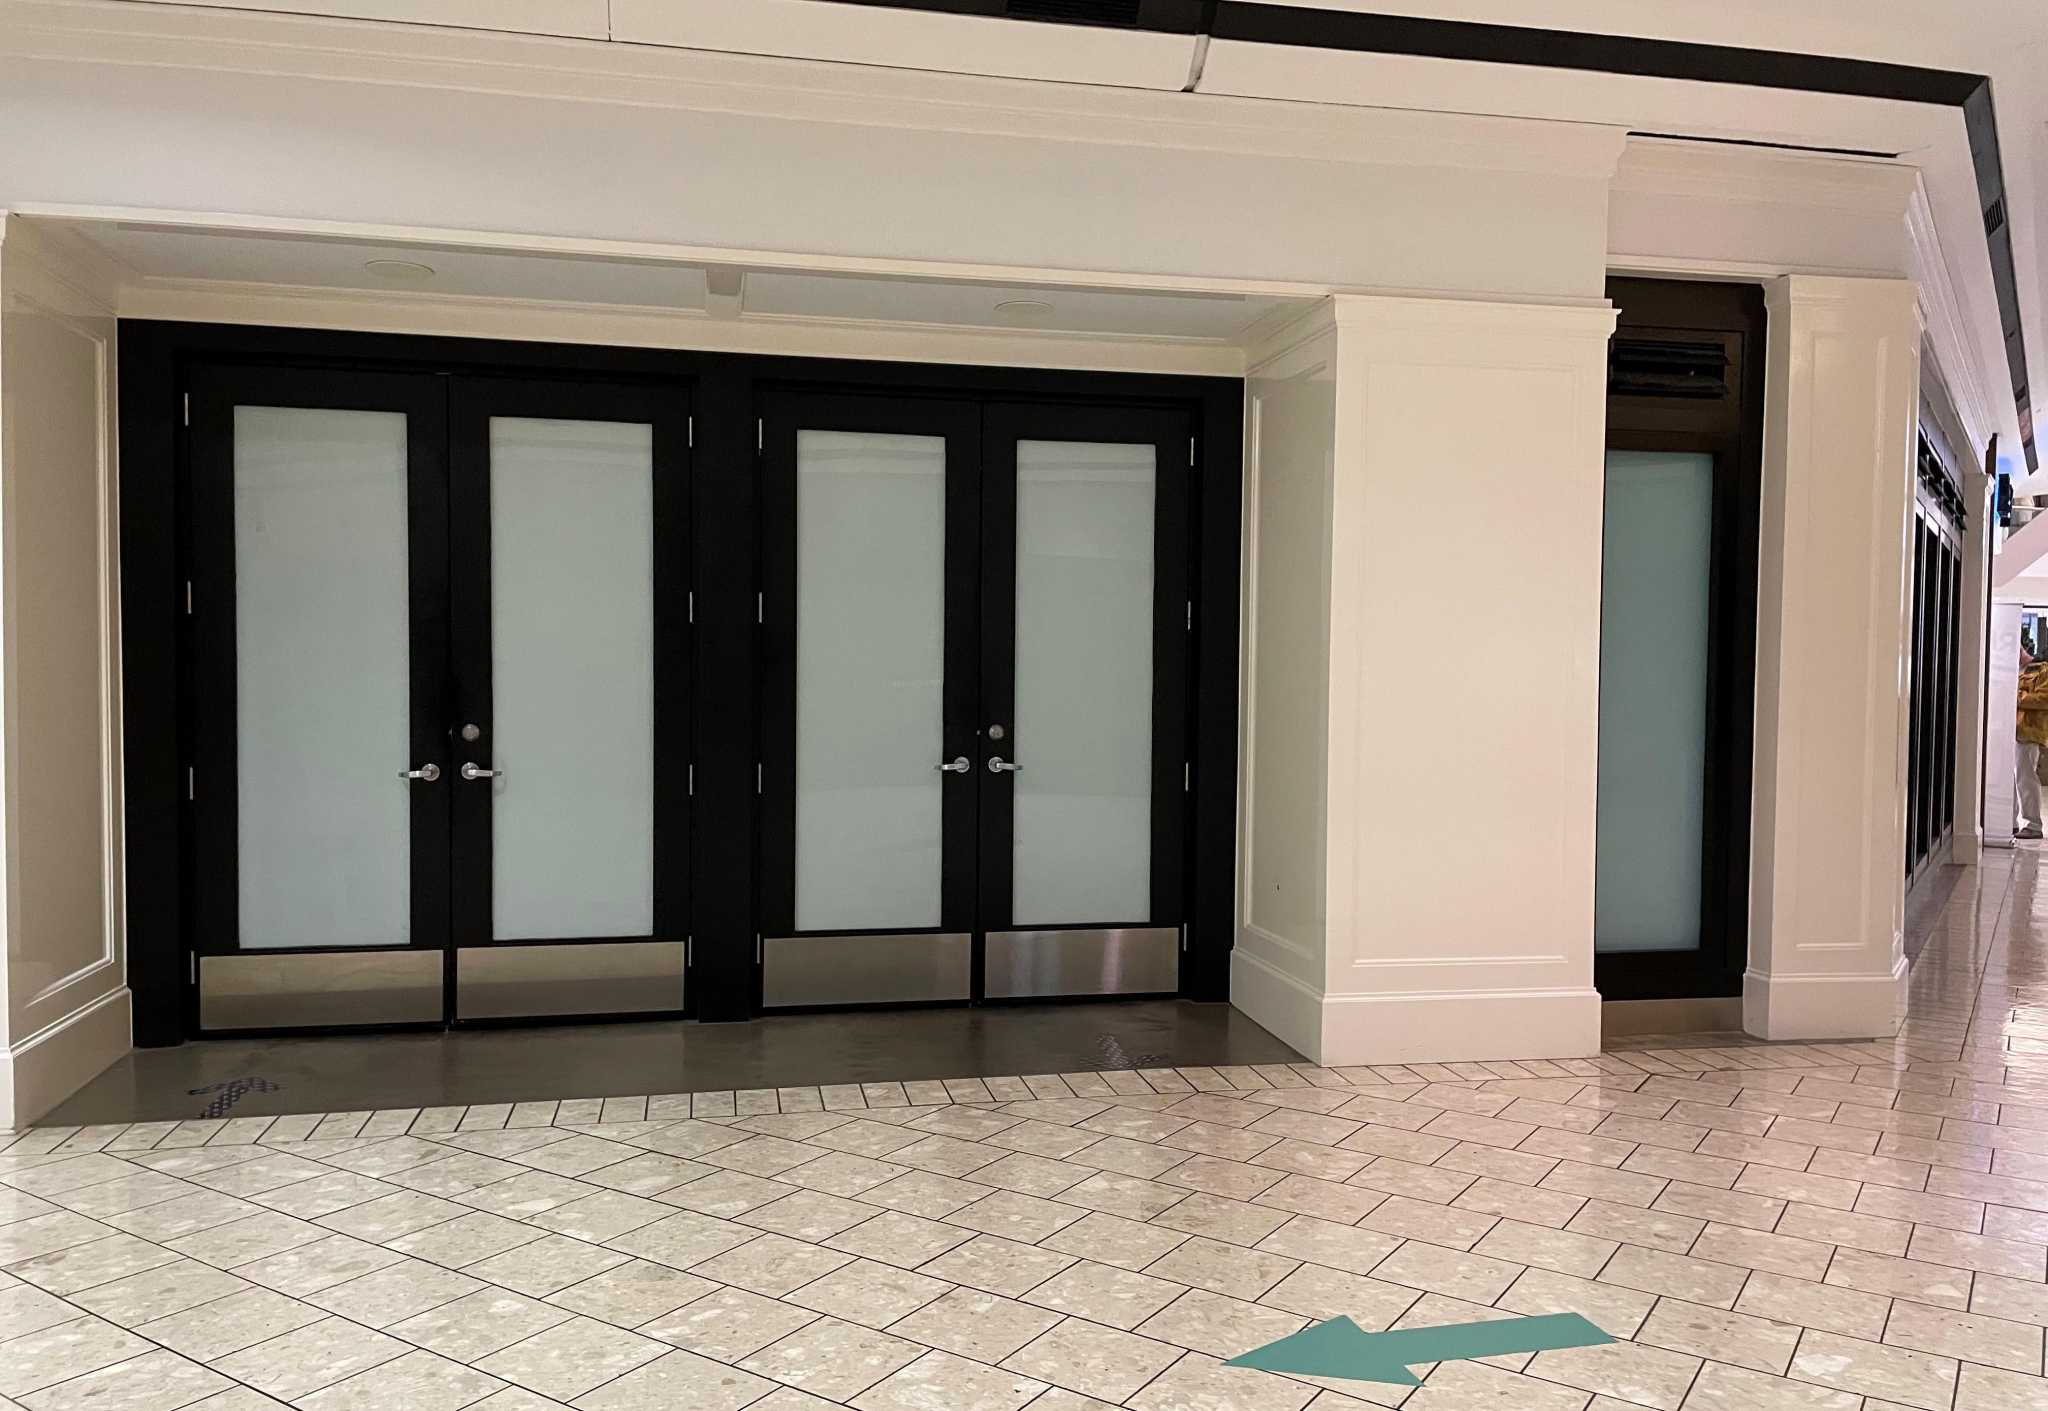 stamford town center hit by closing of